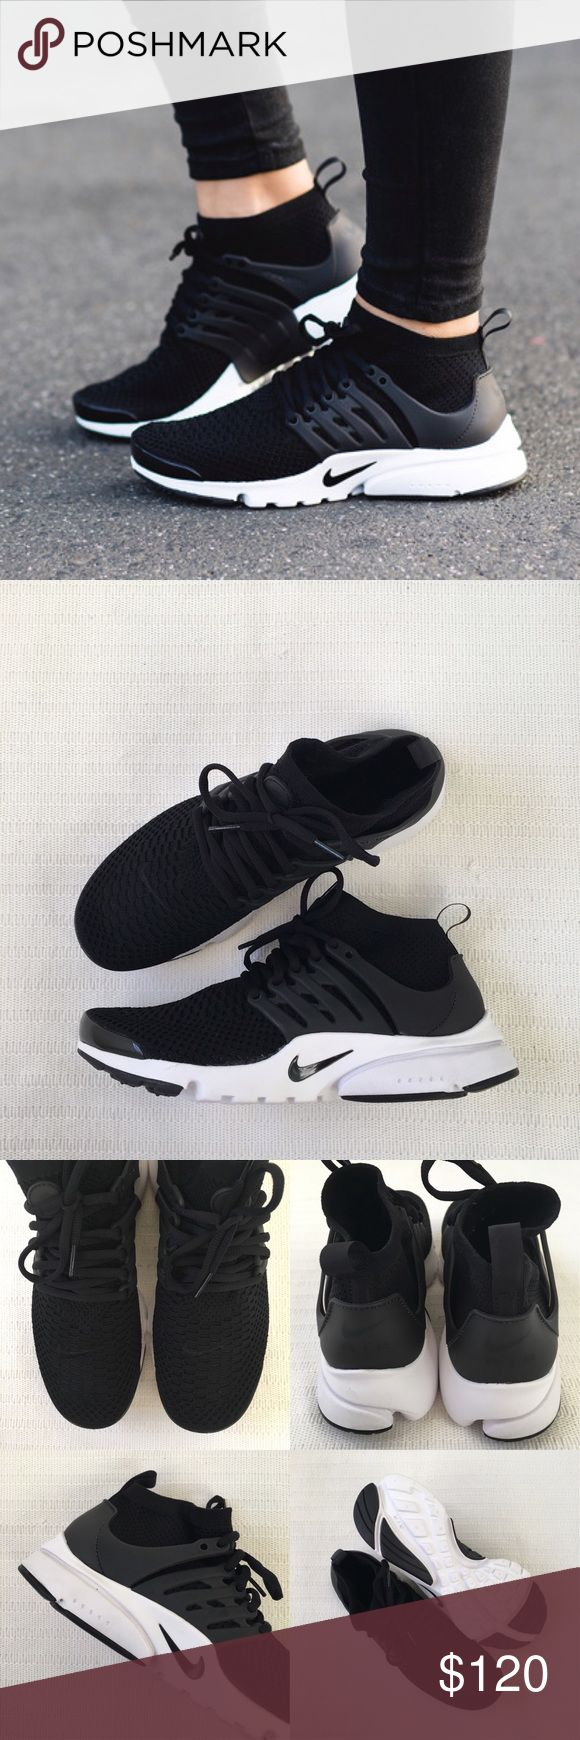 Authentic Nike Air Presto